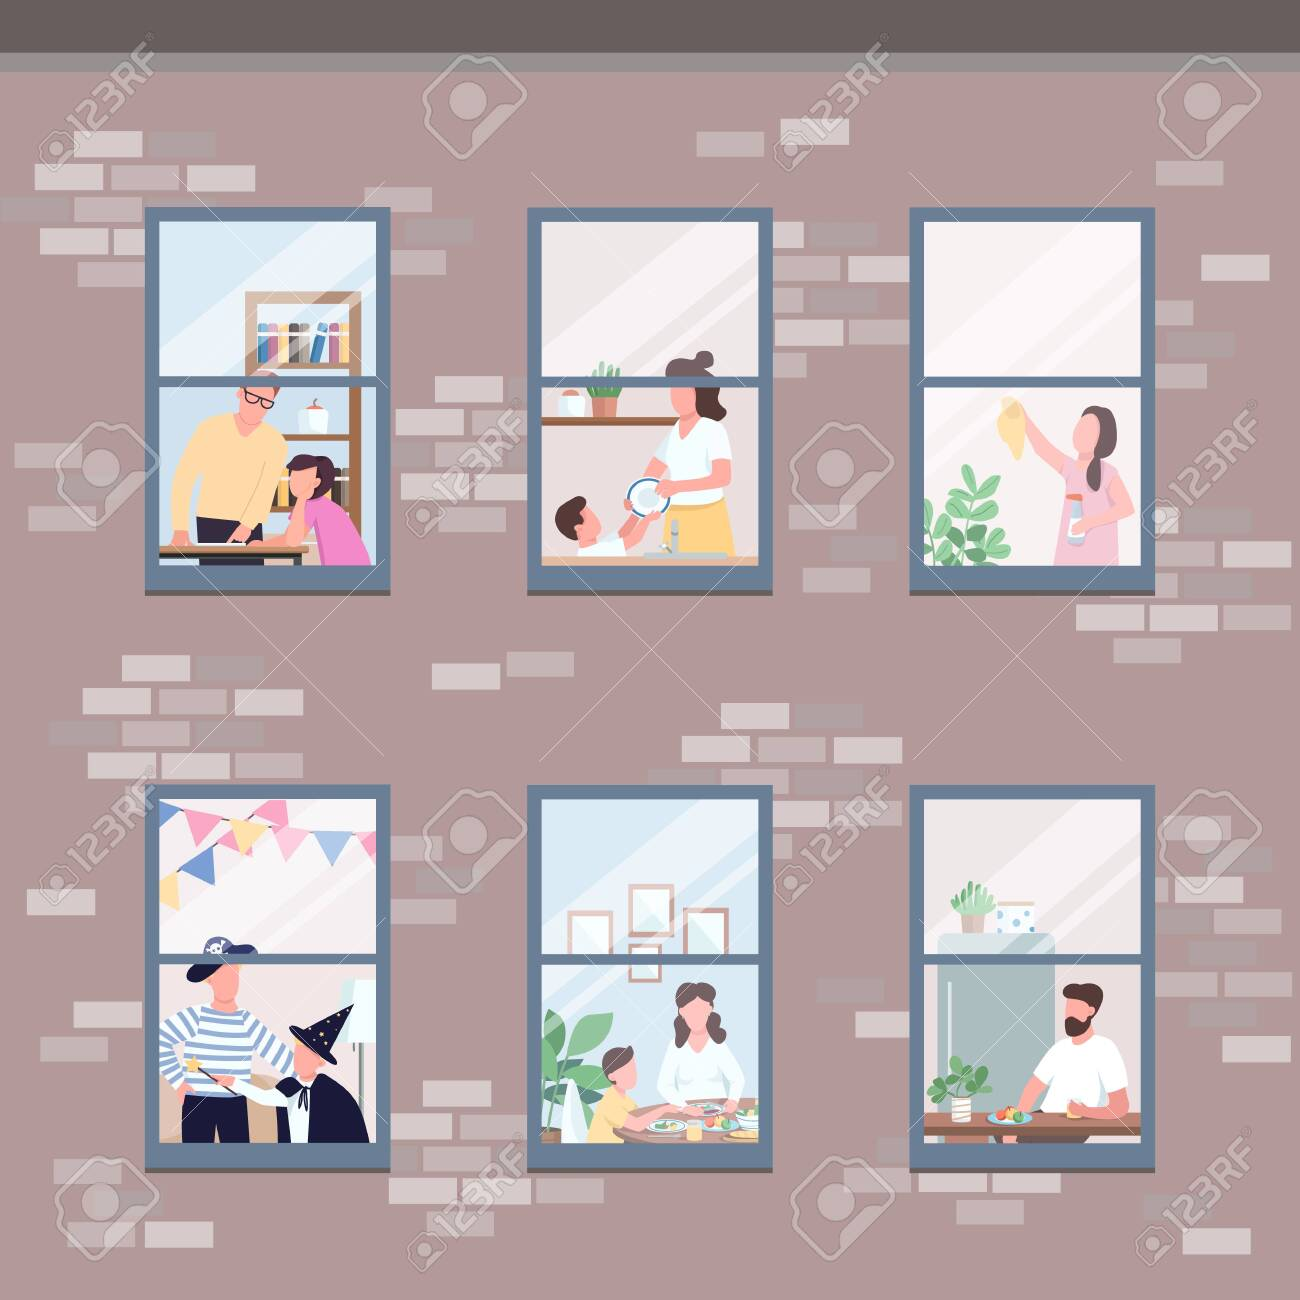 People in different apartments windows flat color vector illustration. Morning routine. Man eat breakfast. Woman clean up. Self isolated relatives 2D cartoon characters with interior on background - 146282605